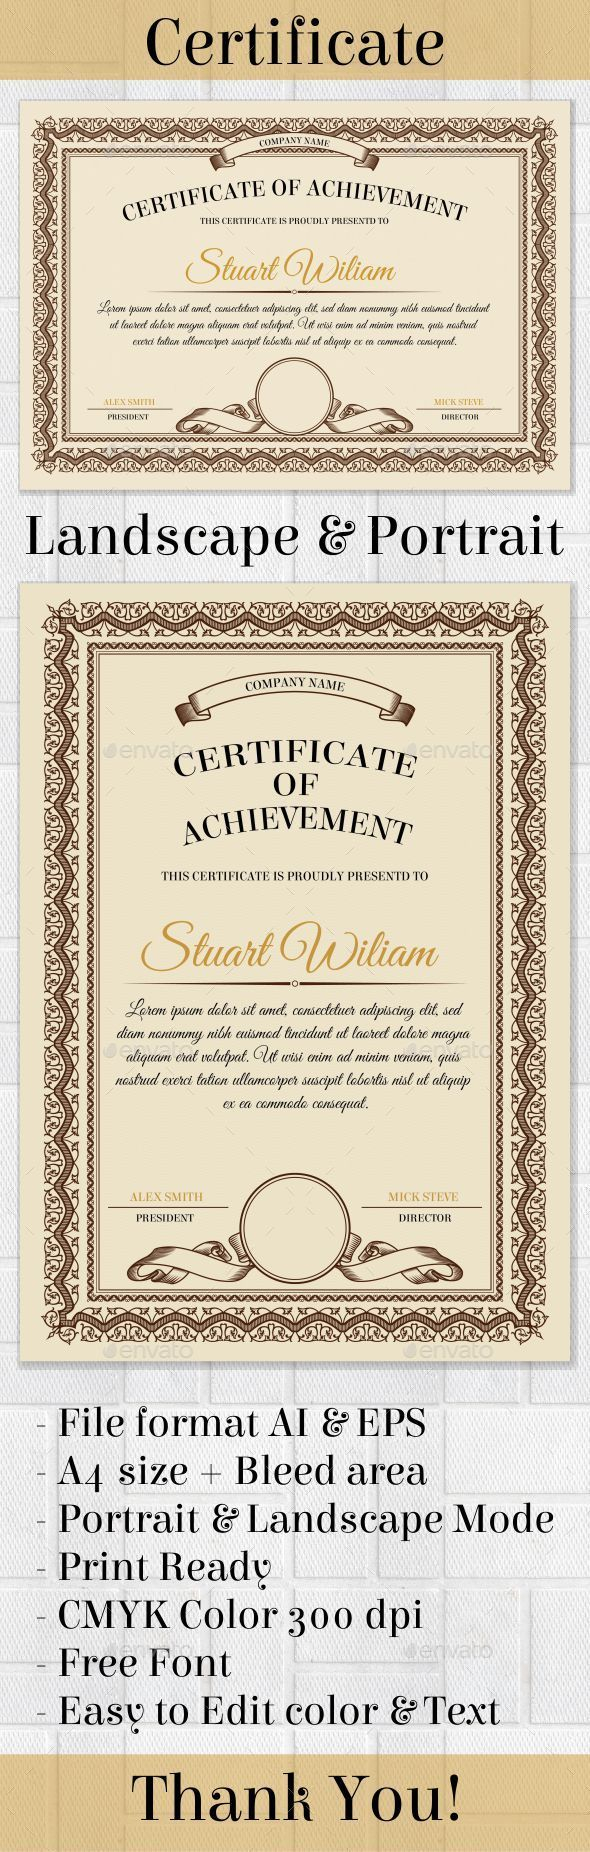 17 best certificate design images on pinterest contemporary certificate template xflitez Choice Image